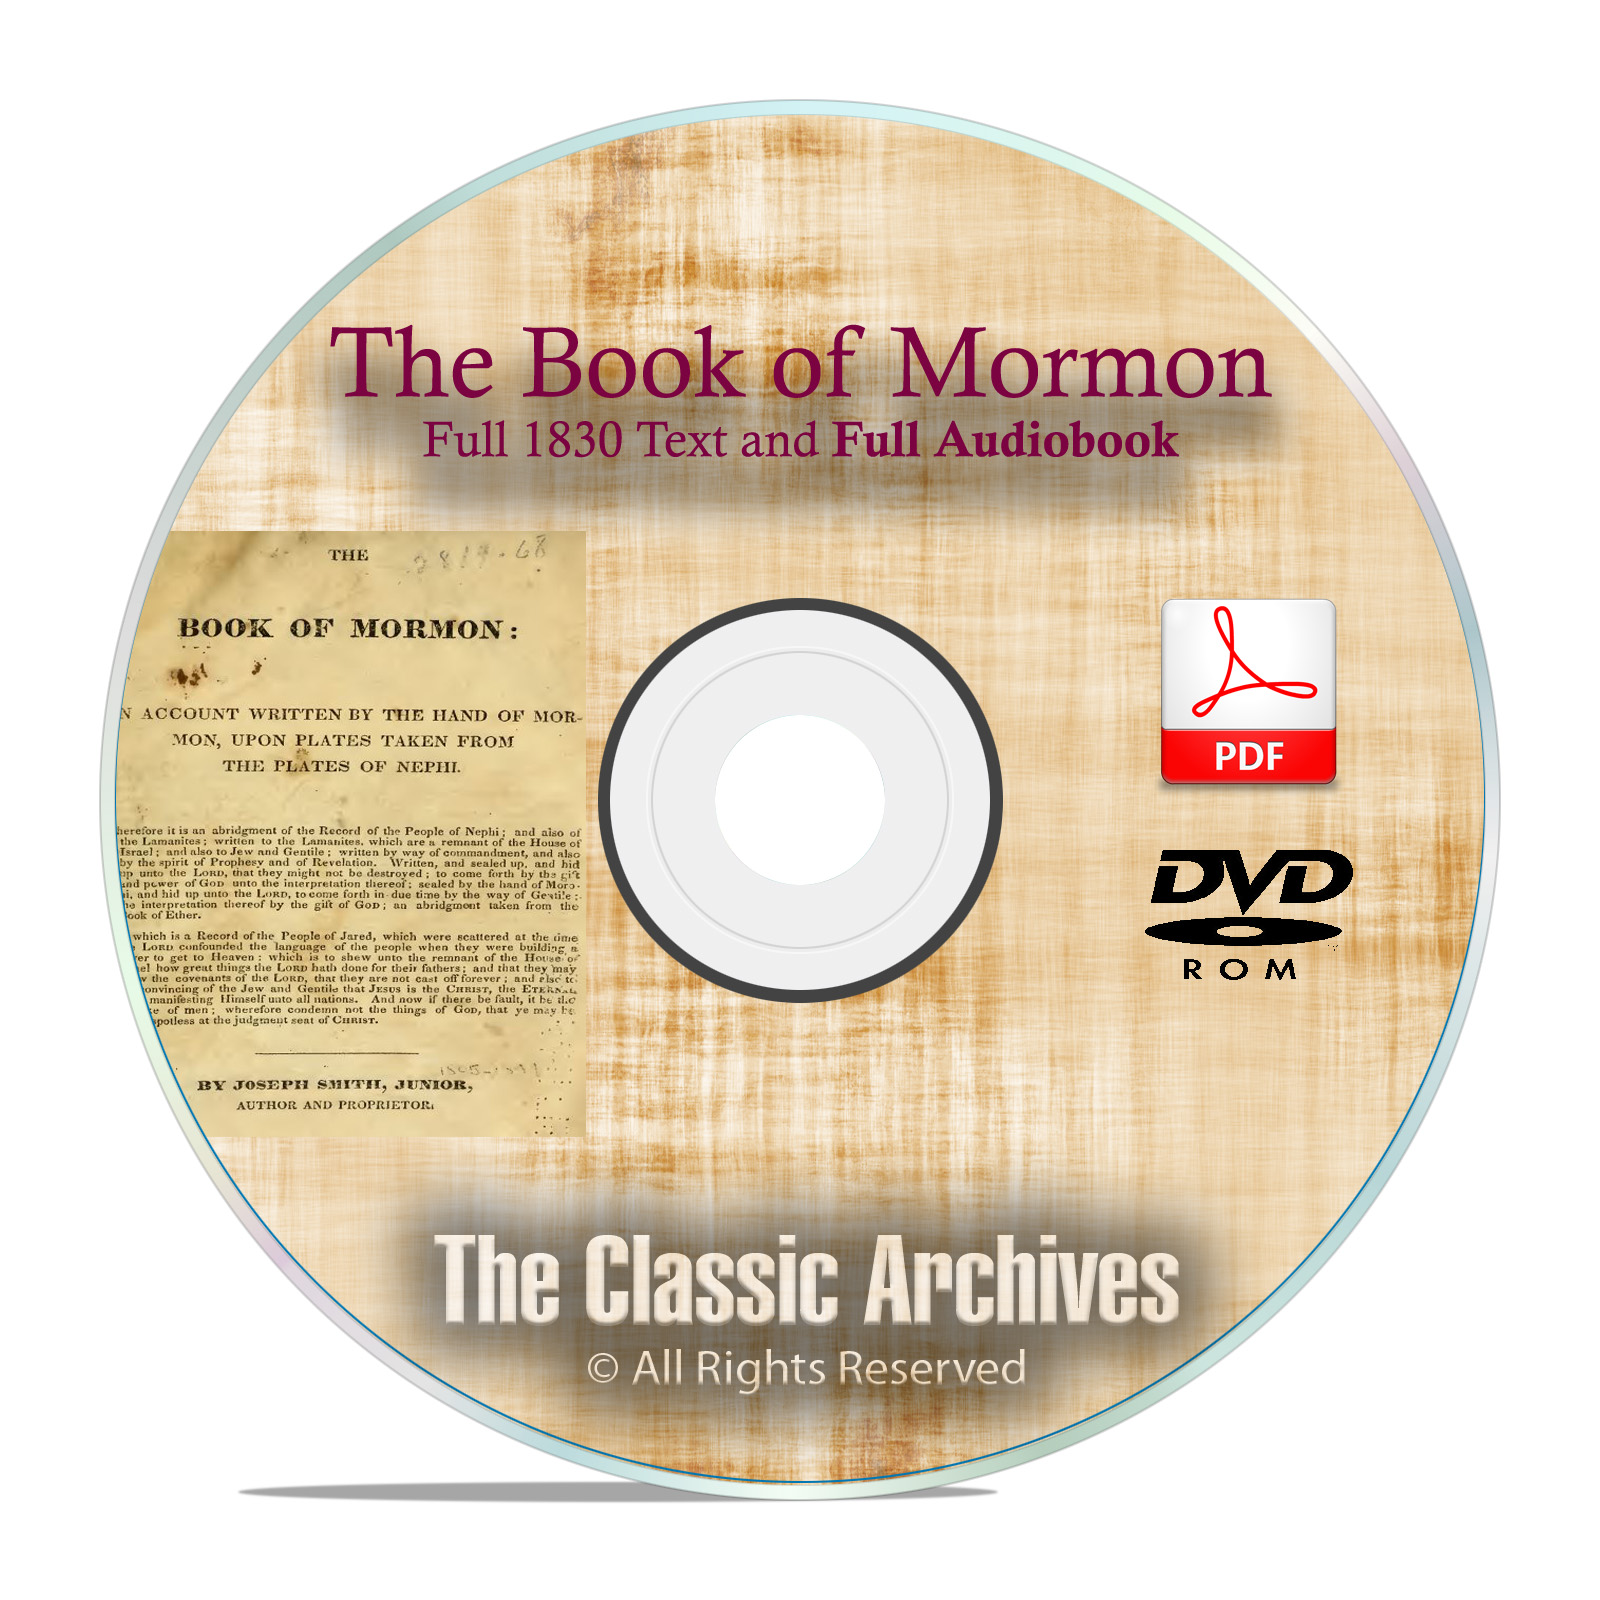 The Book of Mormon, 1830 Edition, Text + Audio Book, by Joseph Smith DVD